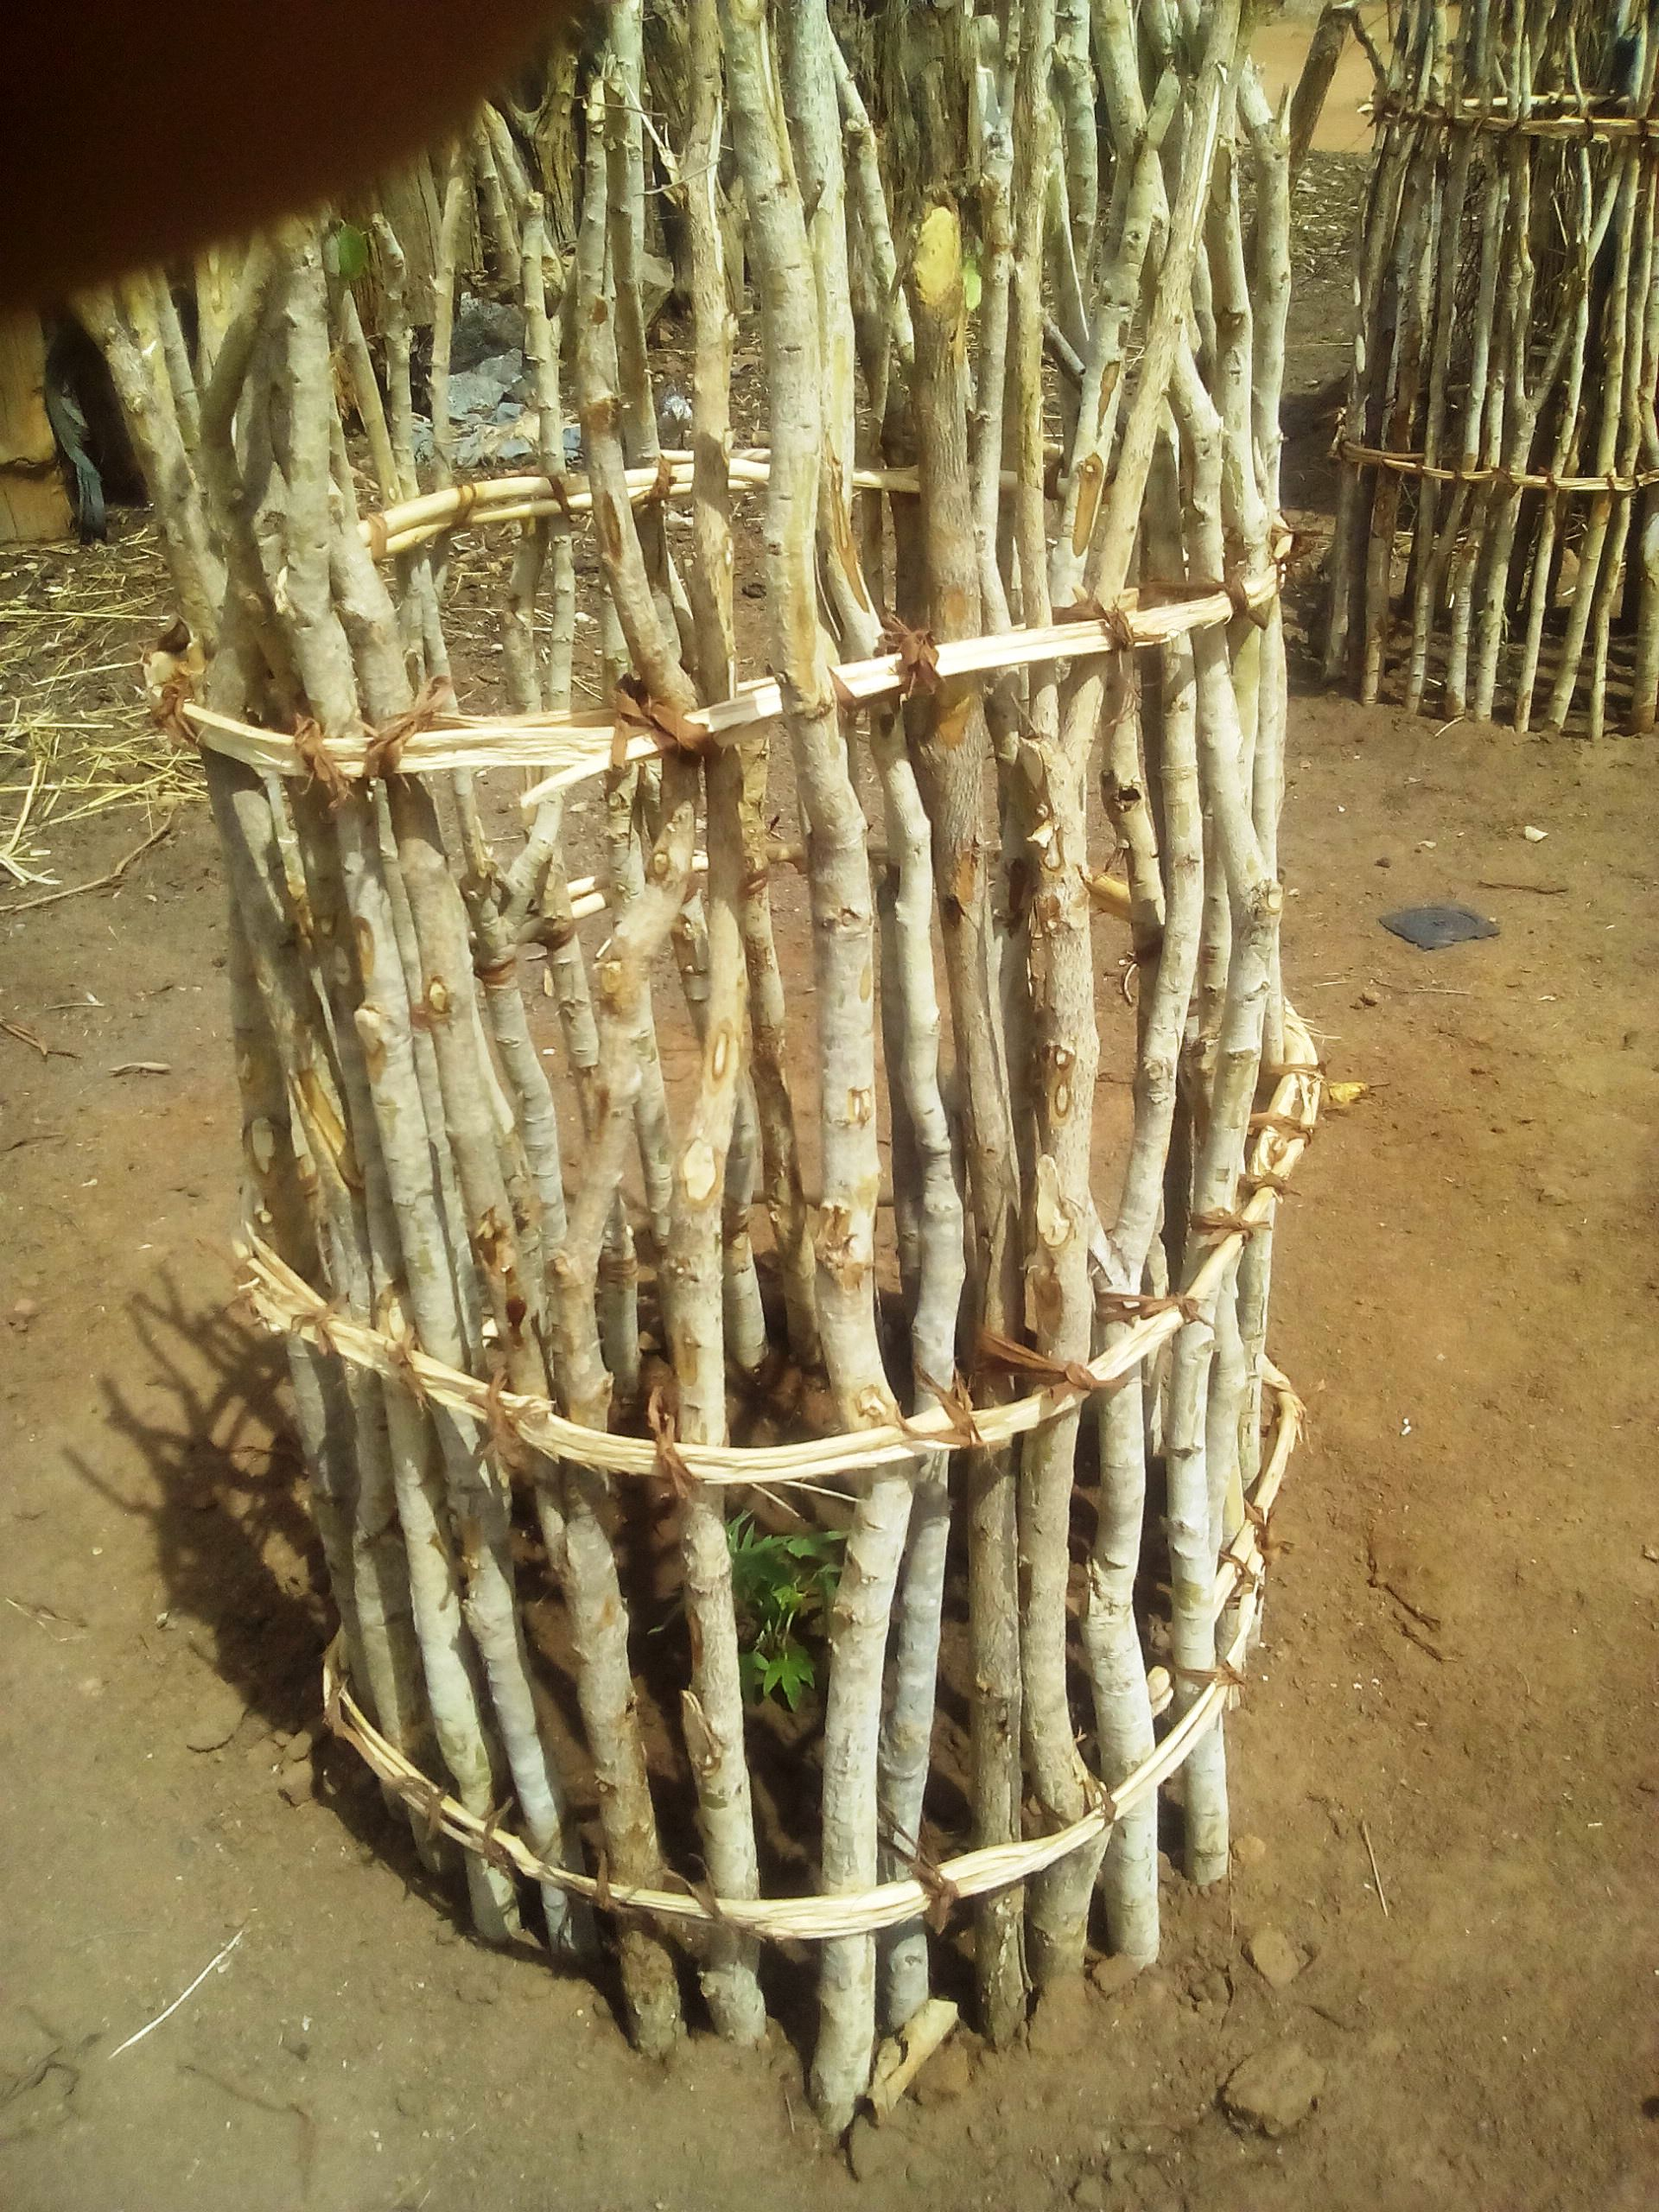 20161227-goat-proofing-in-mumbi-community-forests